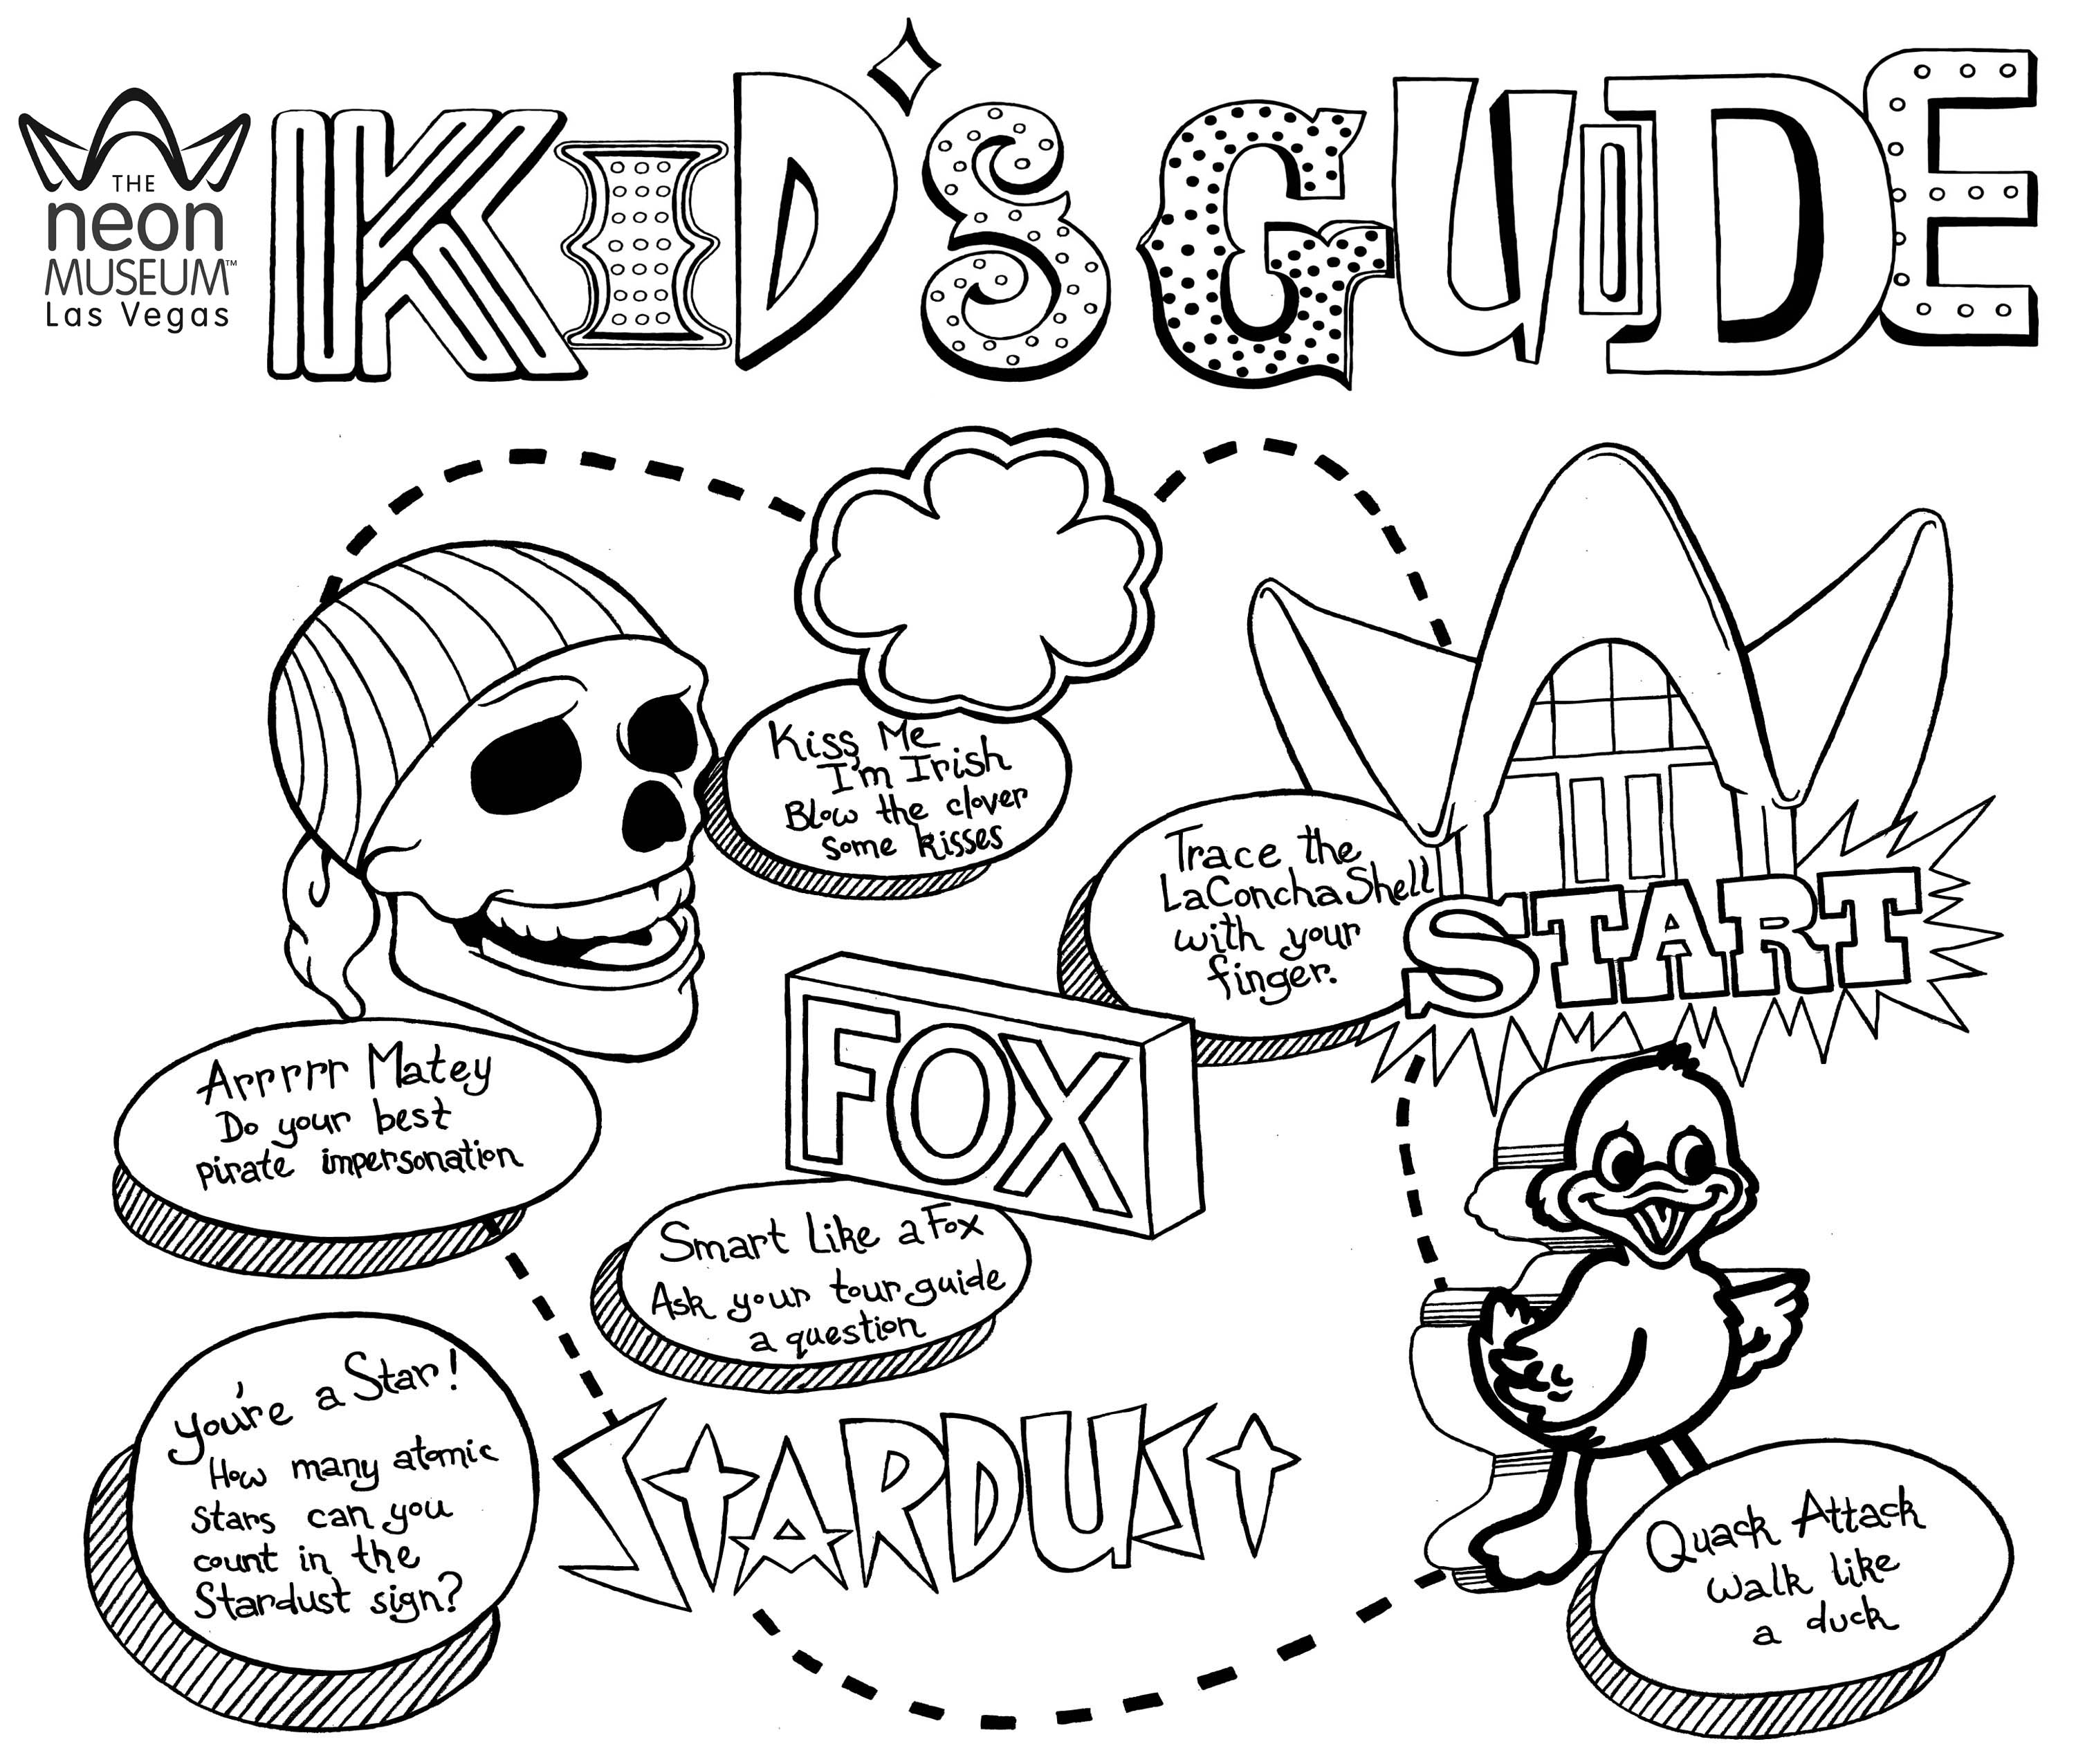 Complete! Kids Activity Sheets for the Neon Museum